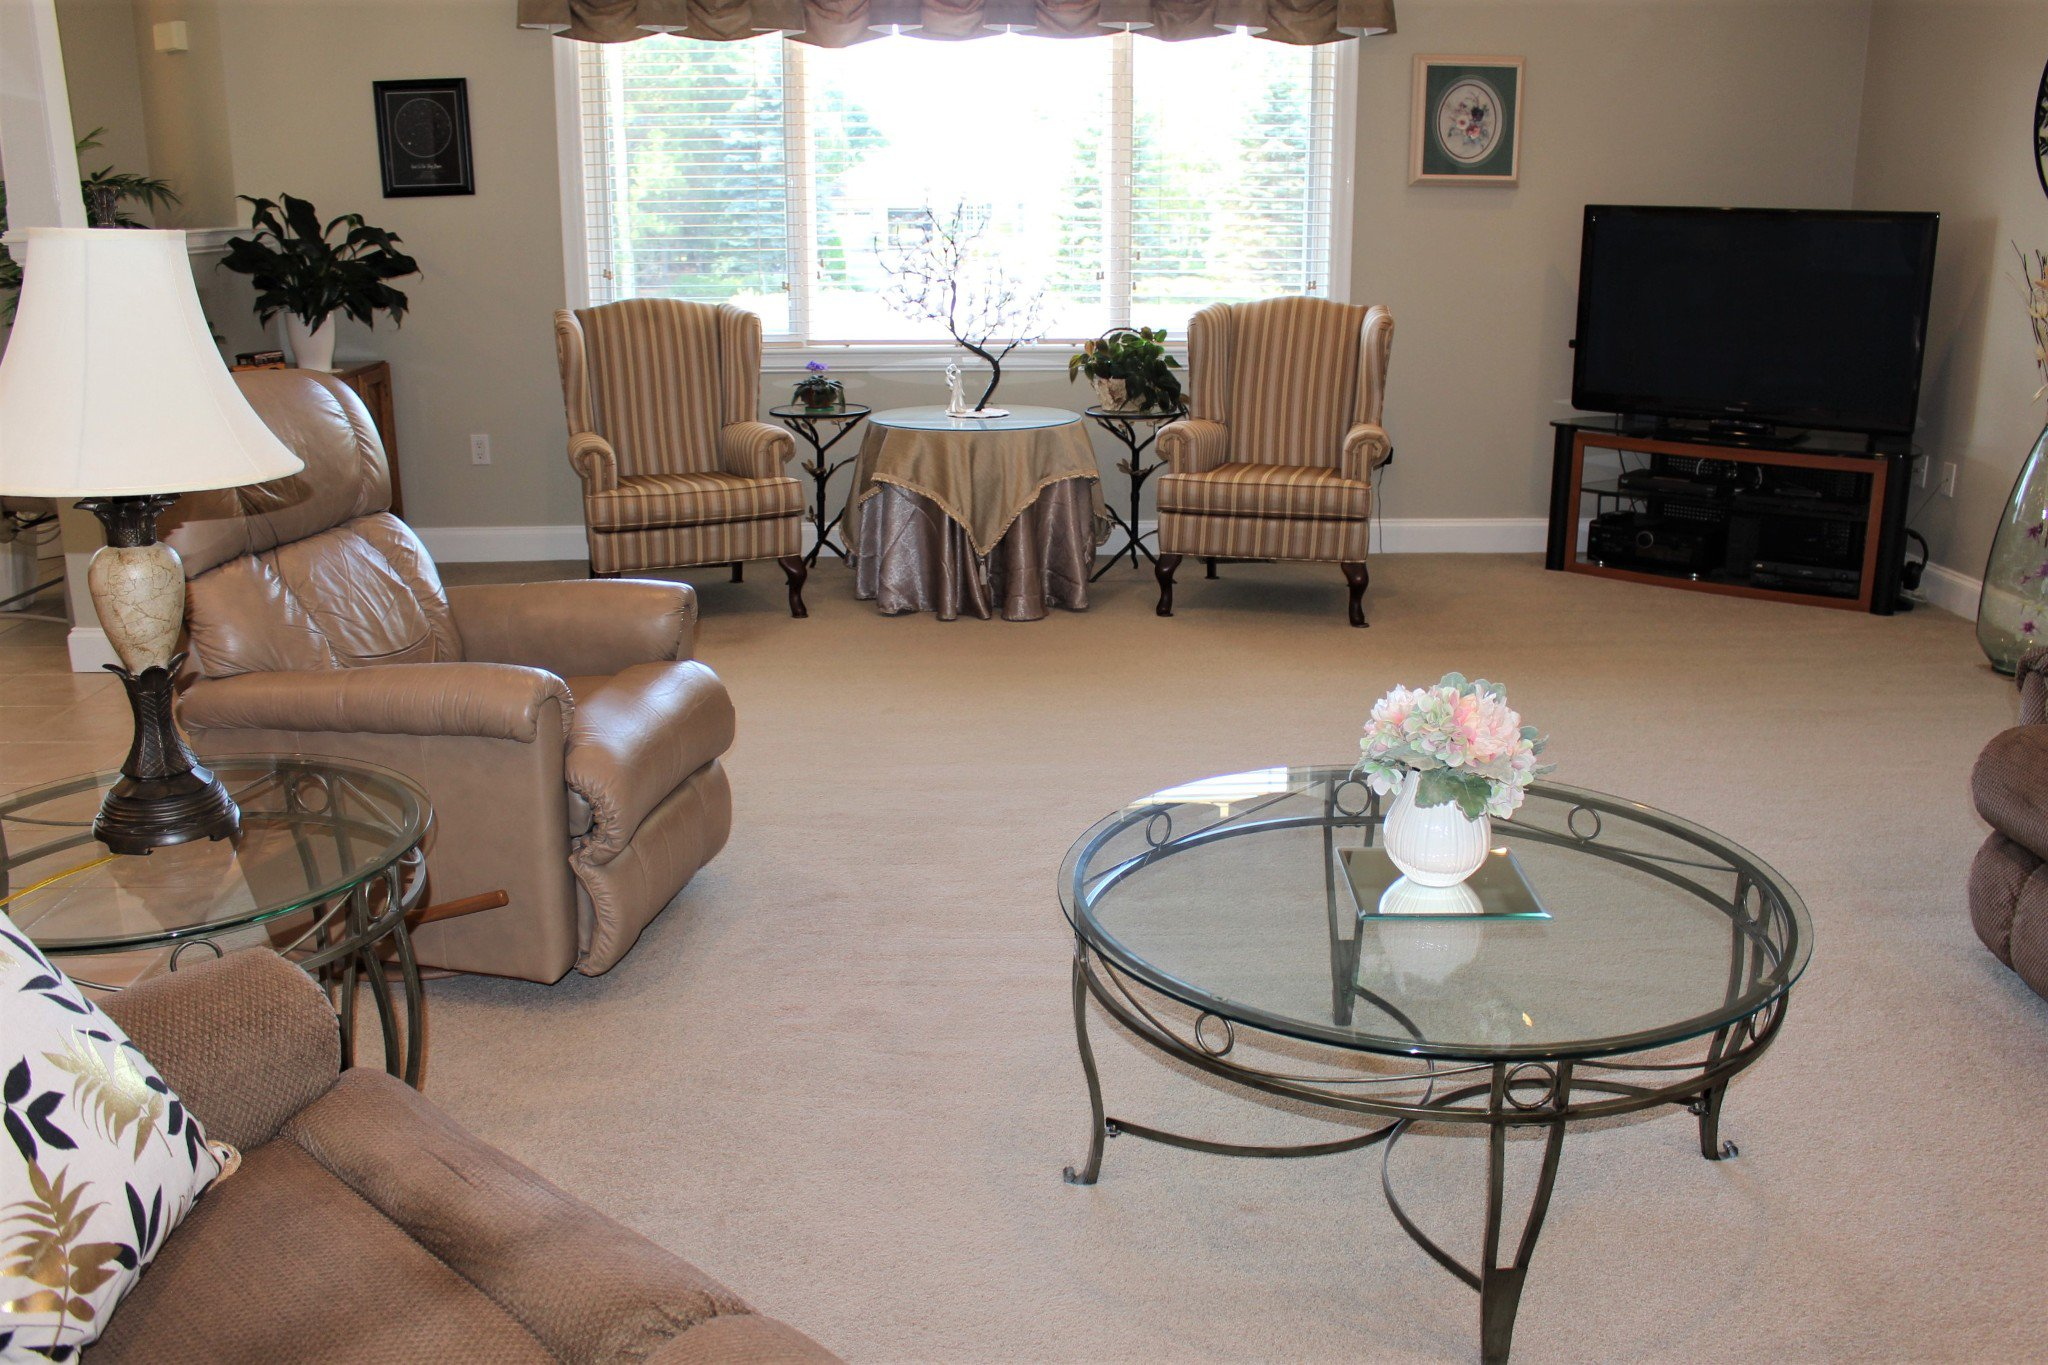 Photo 12: Photos: 159 Nawautin Drive in Grafton: Residential Detached for sale : MLS®# 40012652